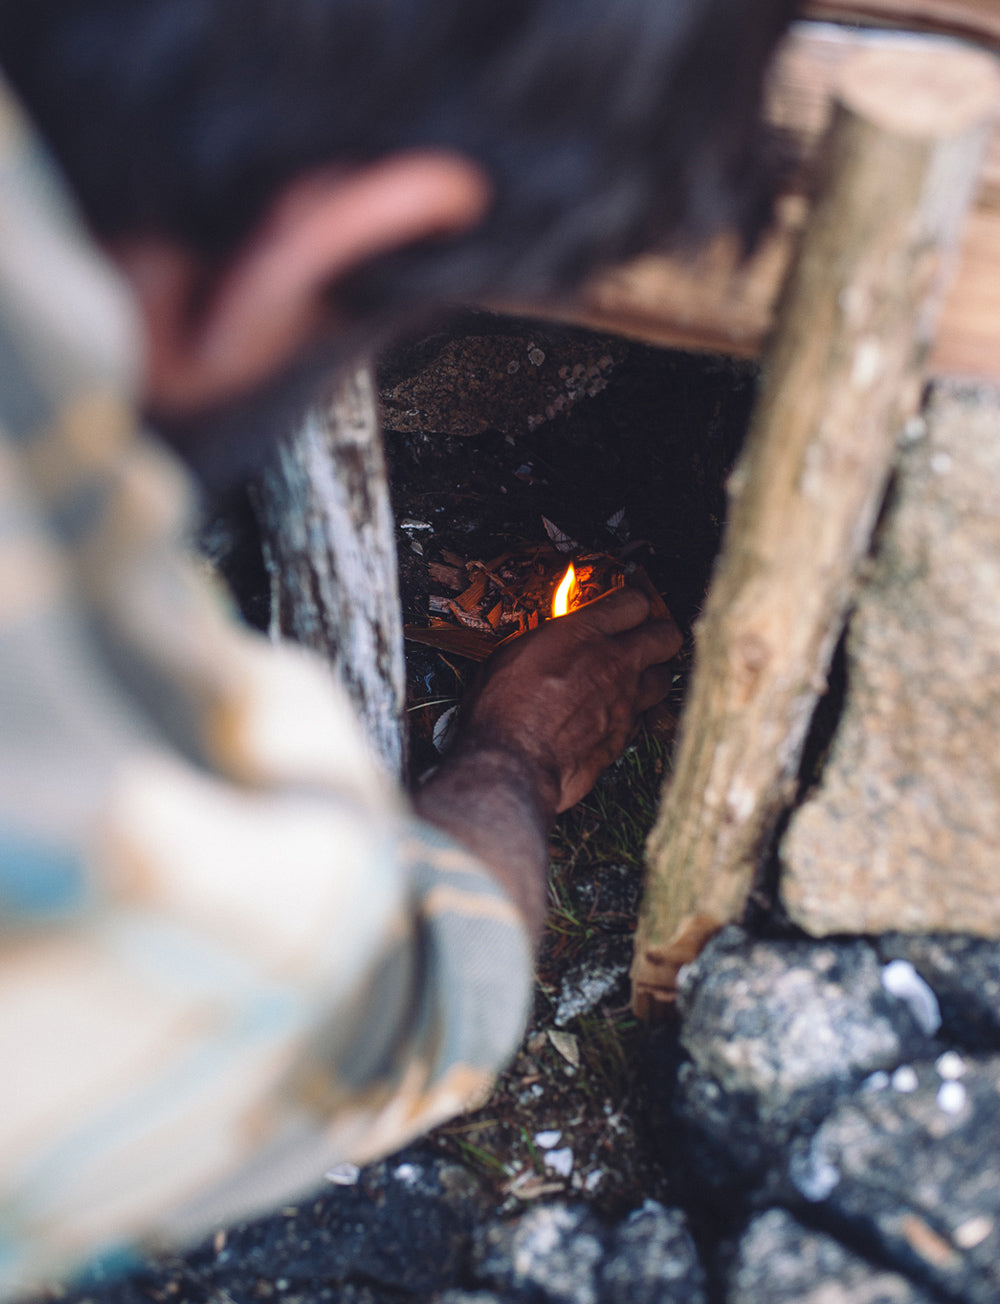 Man tends to a small fire inside a smoke stack